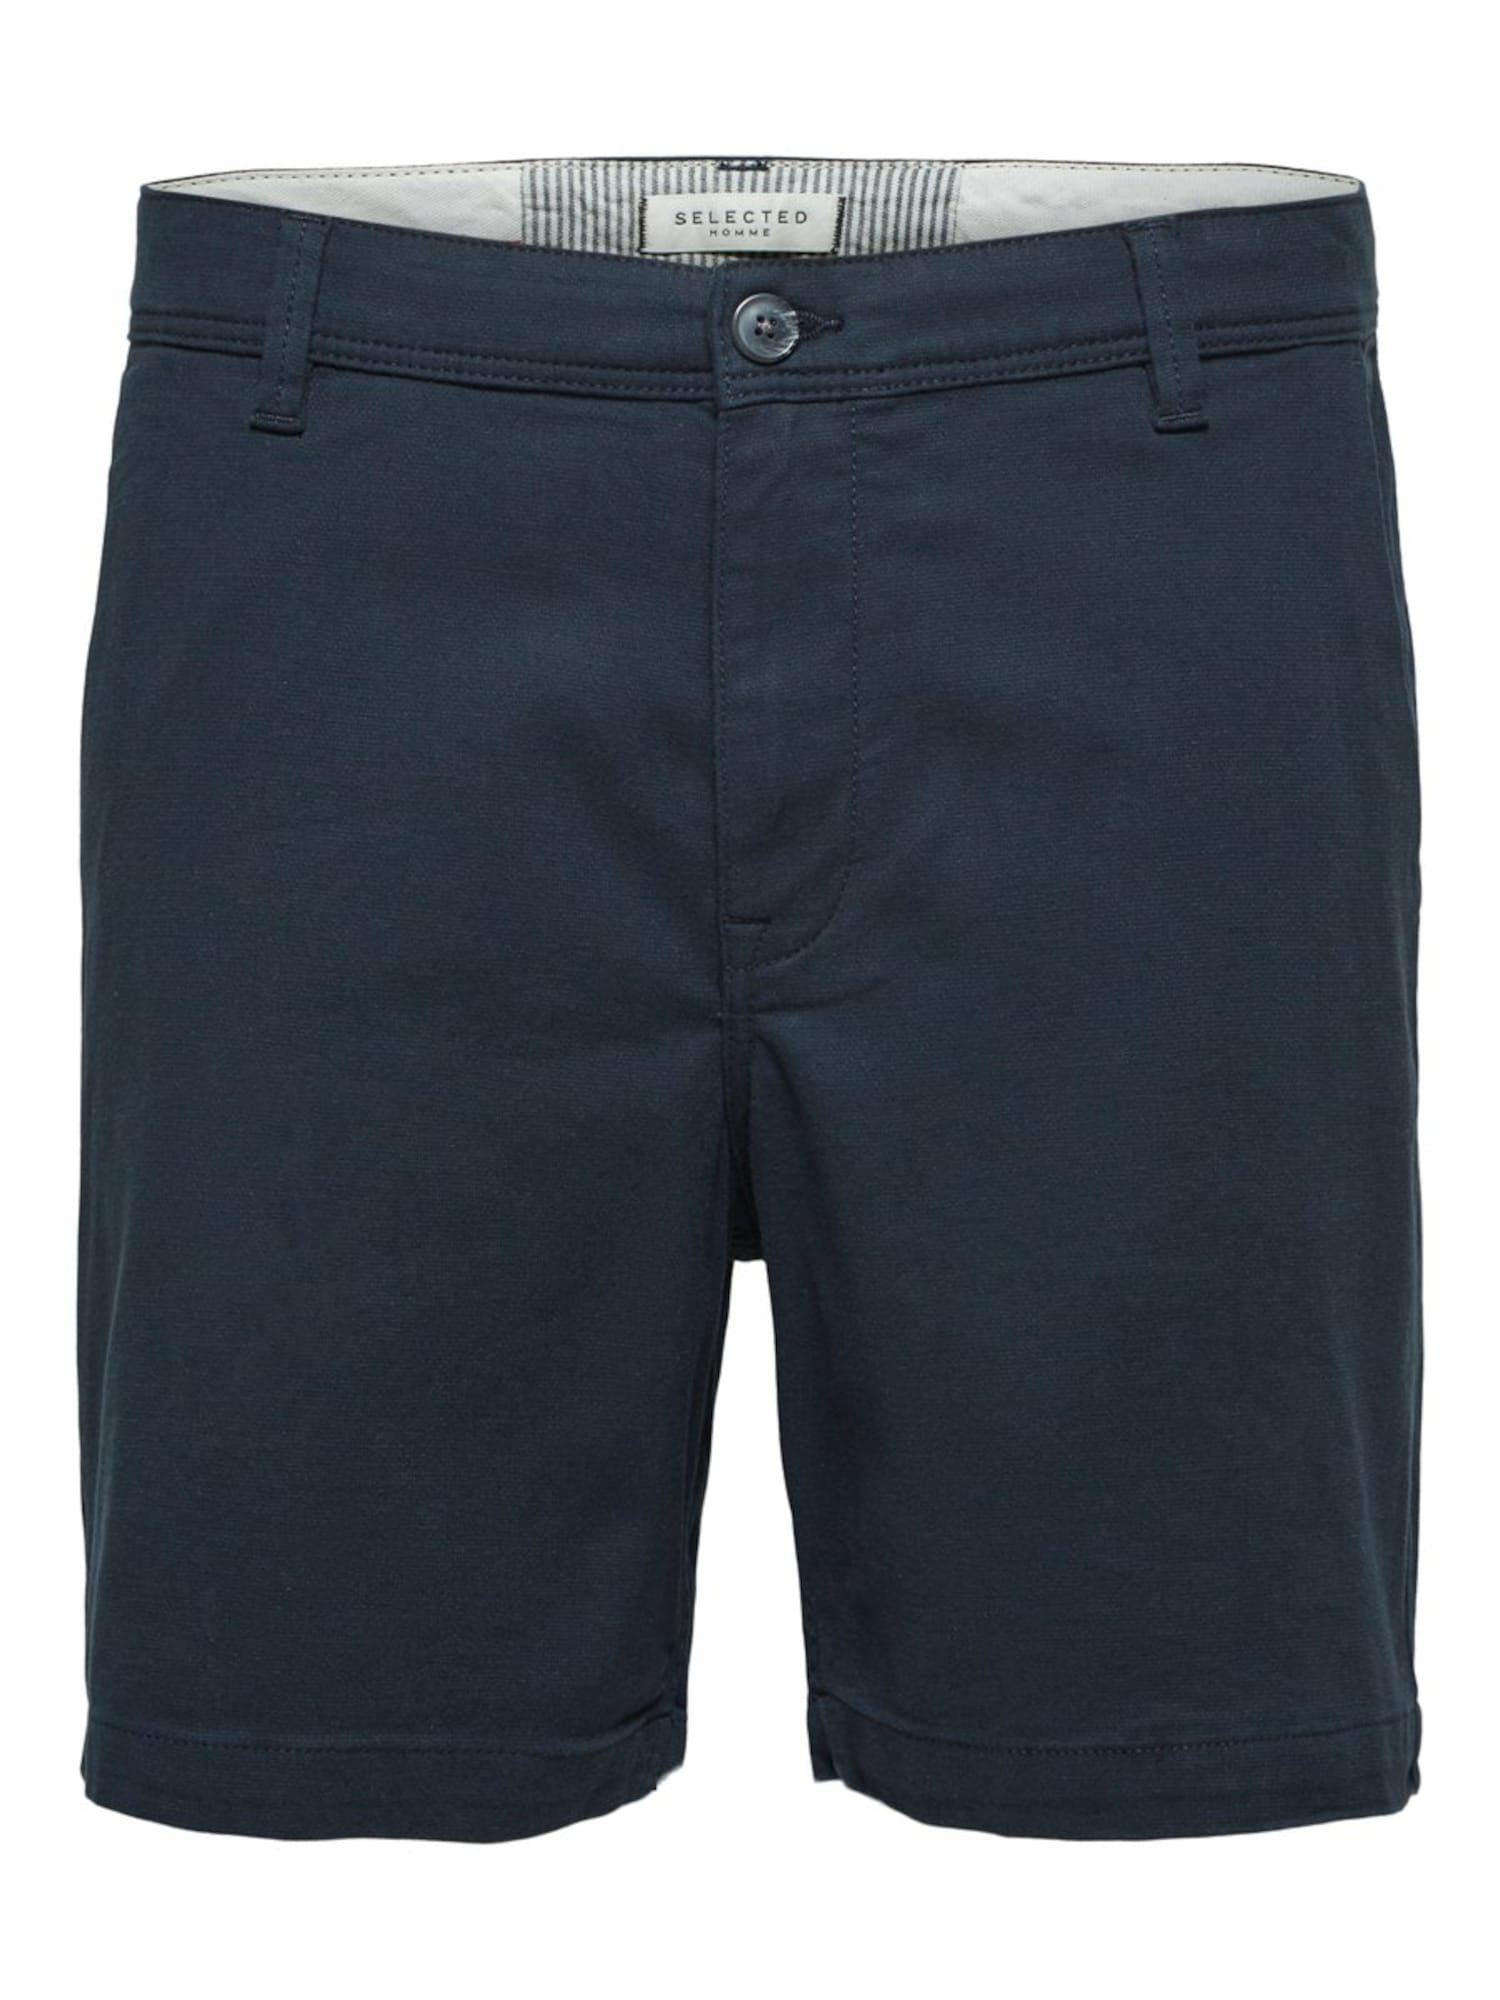 SELECTED HOMME Chino kalhoty tmavě modrá Selected Homme